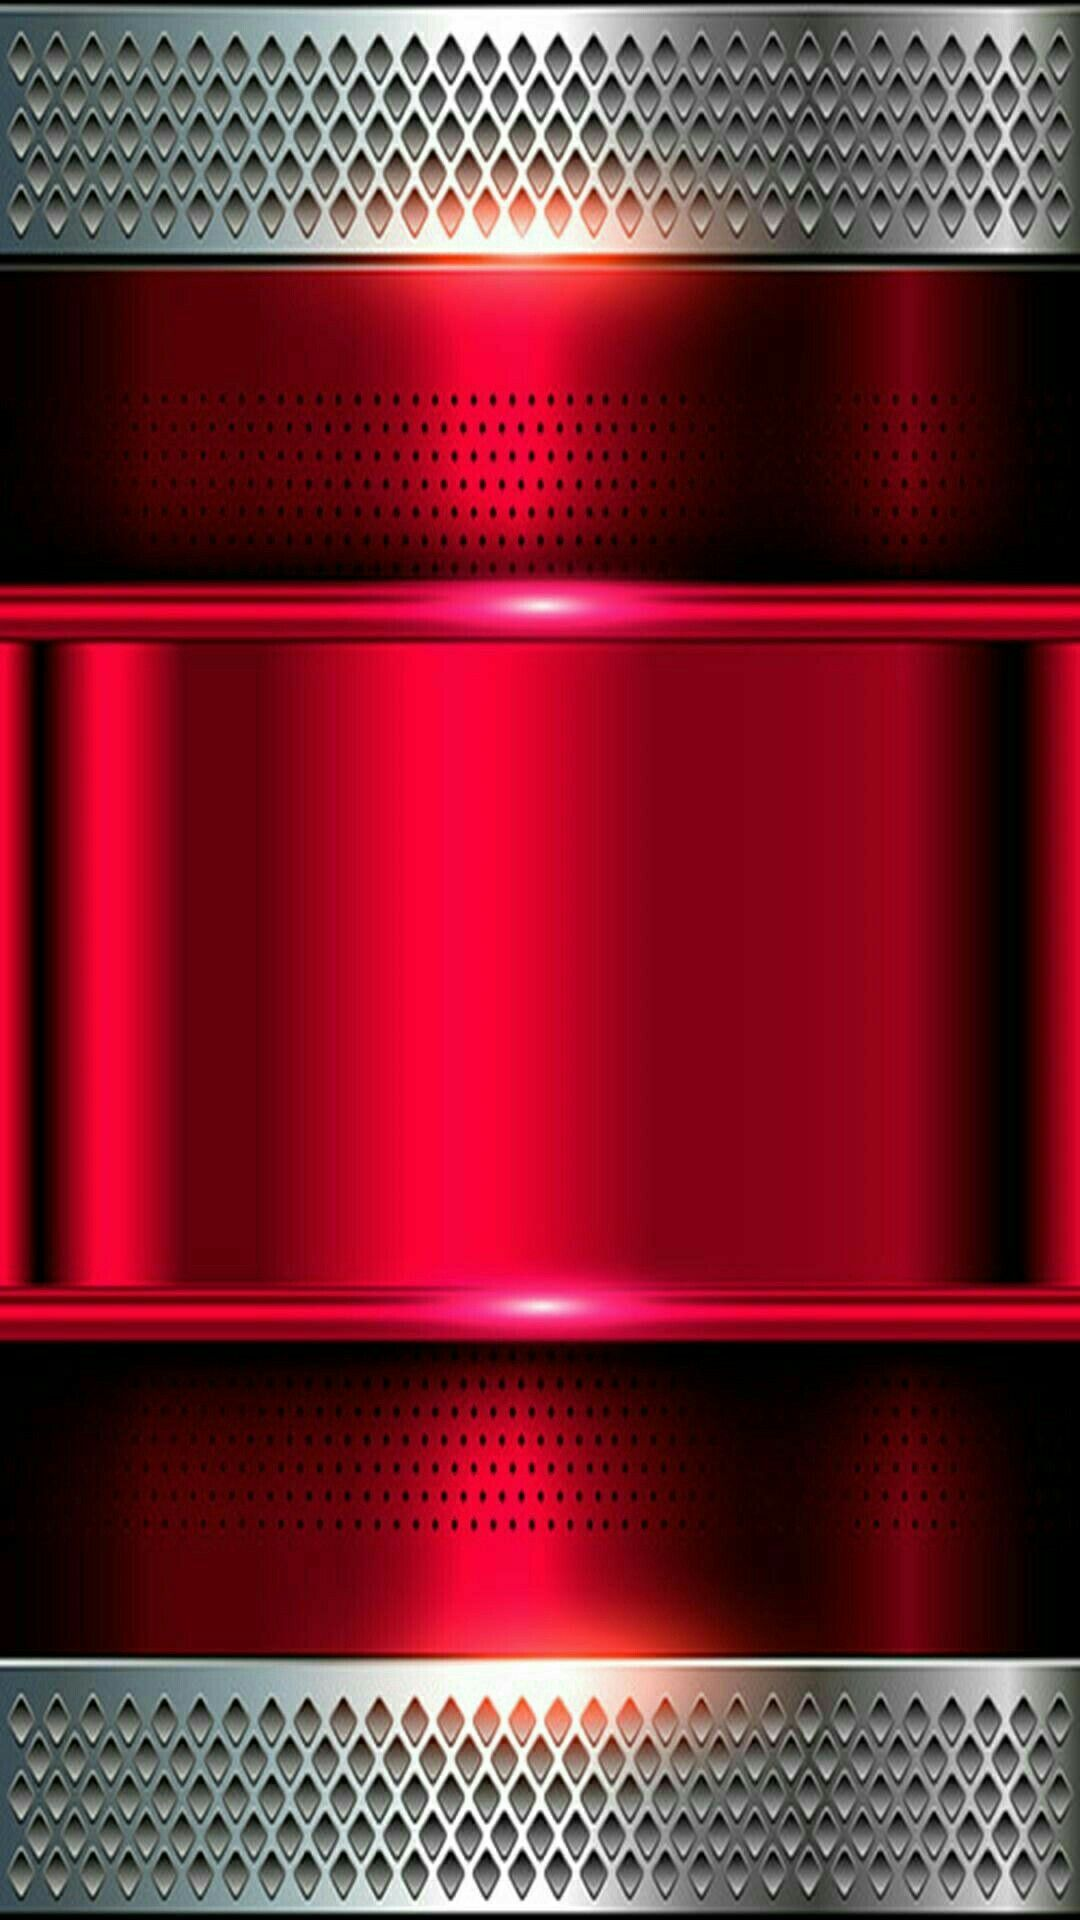 Red Wallpaper Cell Phone Wallpapers Yandex Samsung Metallic Backgrounds Cover Pages Backdrops Cellphone